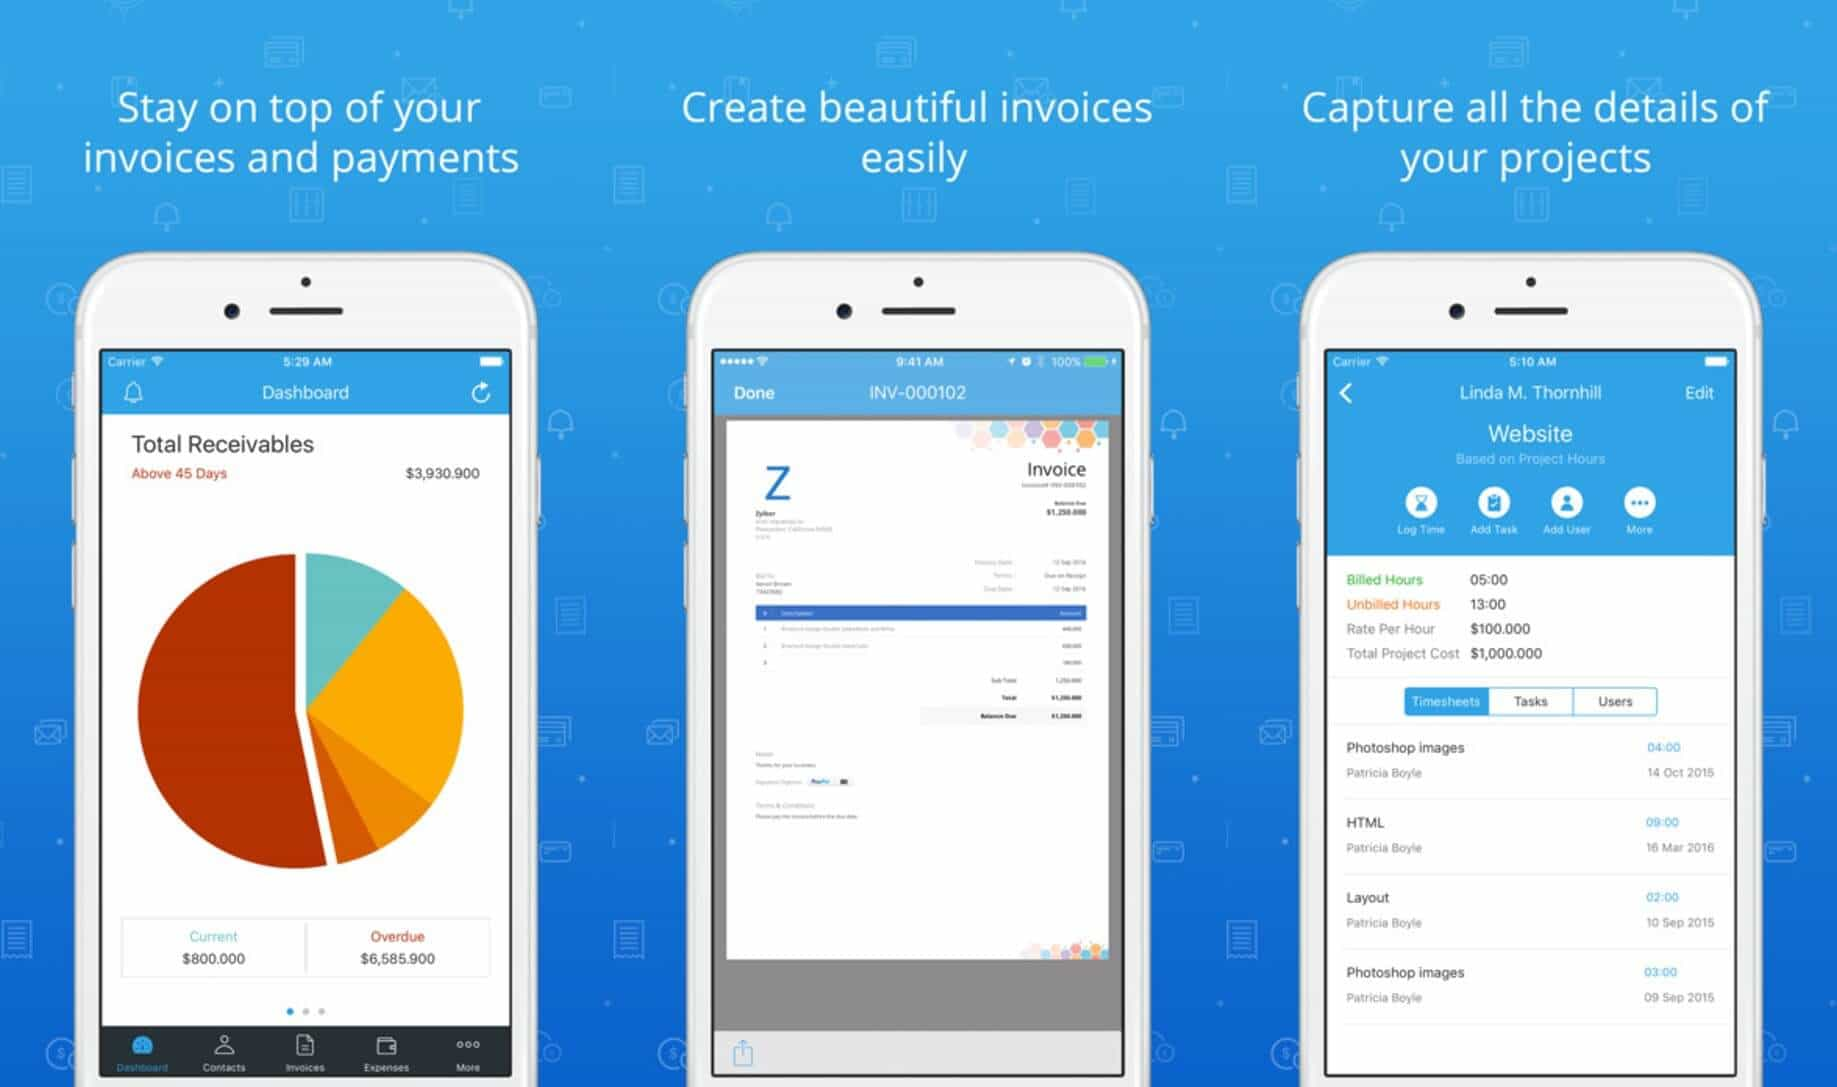 Top Best Invoice App For IPhone And IPad TechJeny - What is the best invoice app for ipad for service business